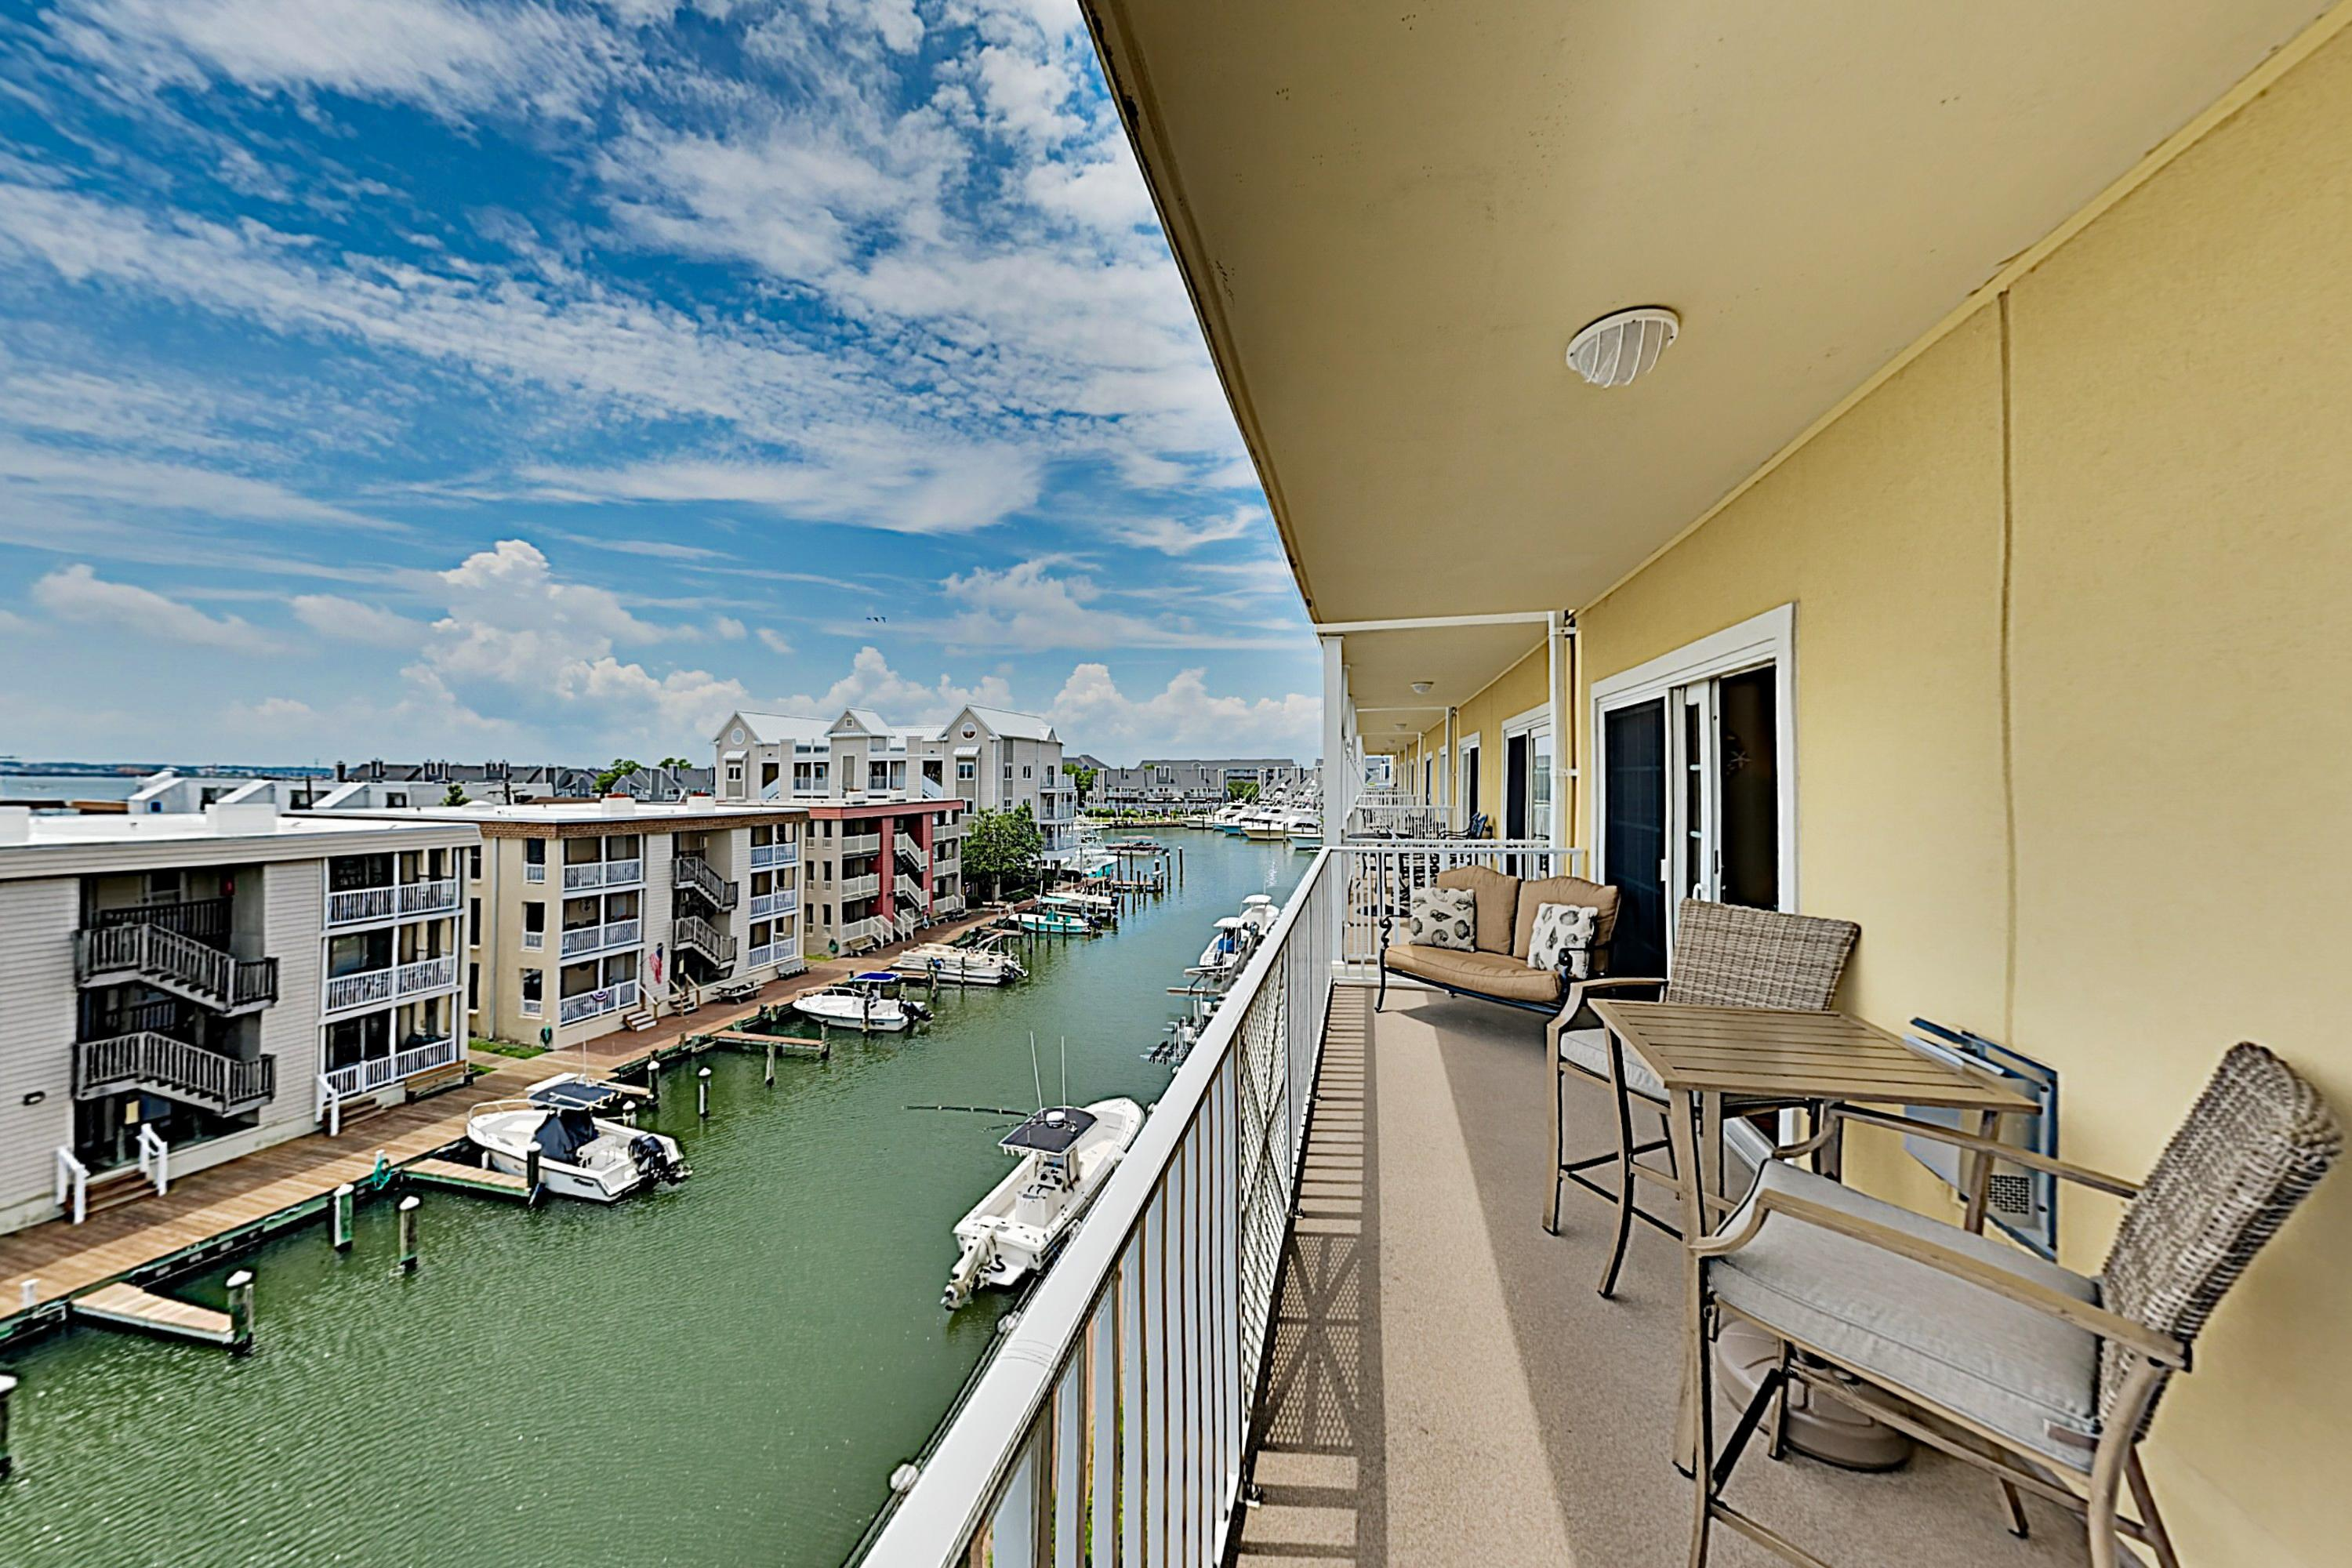 Property Image 1 - Lovely Waterfront Condo w/ Balcony - Near Beach!